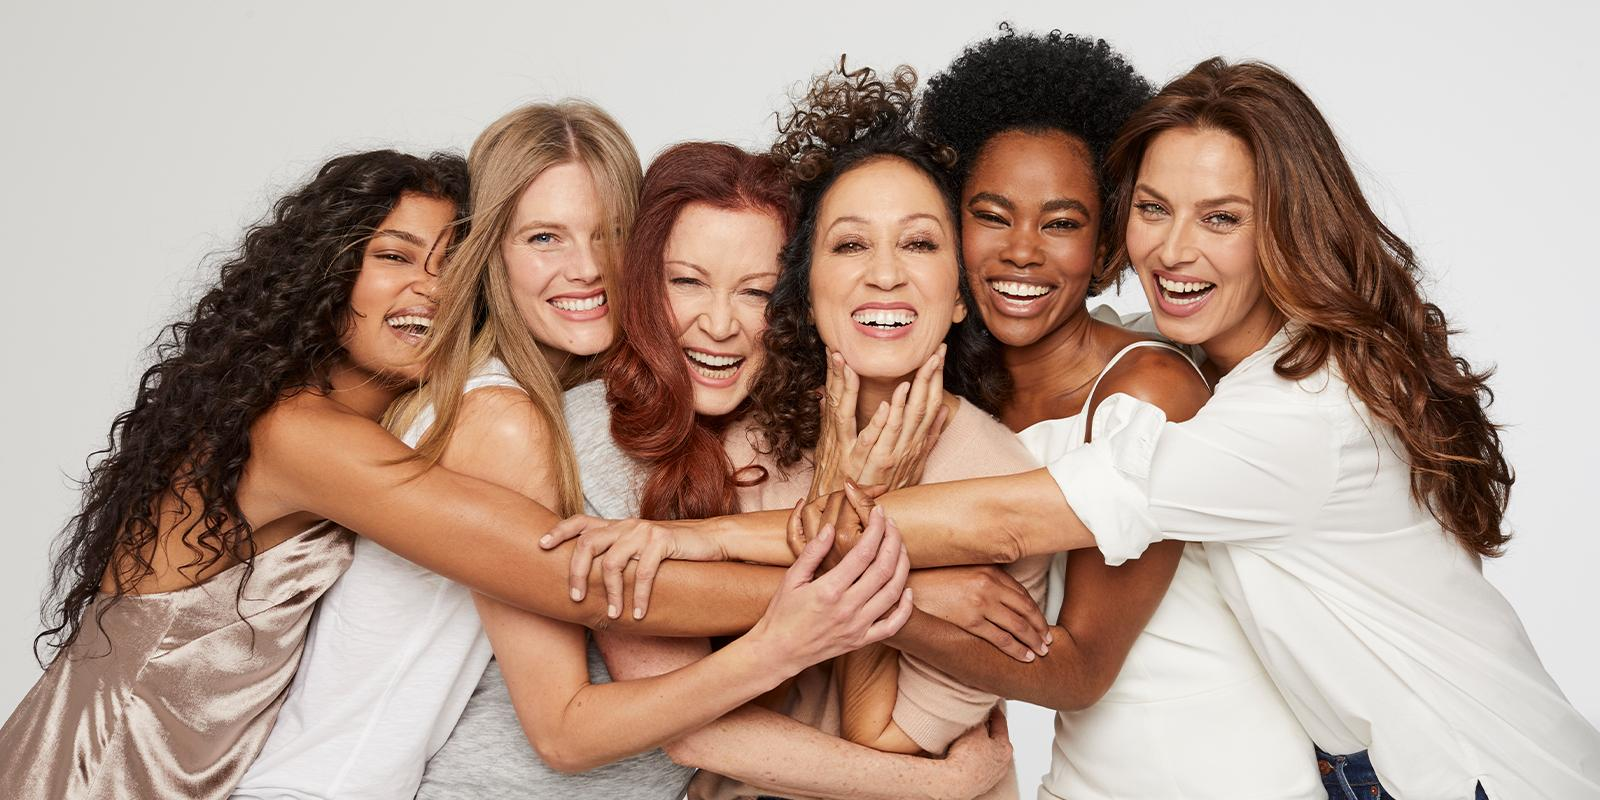 Women with beautiful hair hugging and smiling